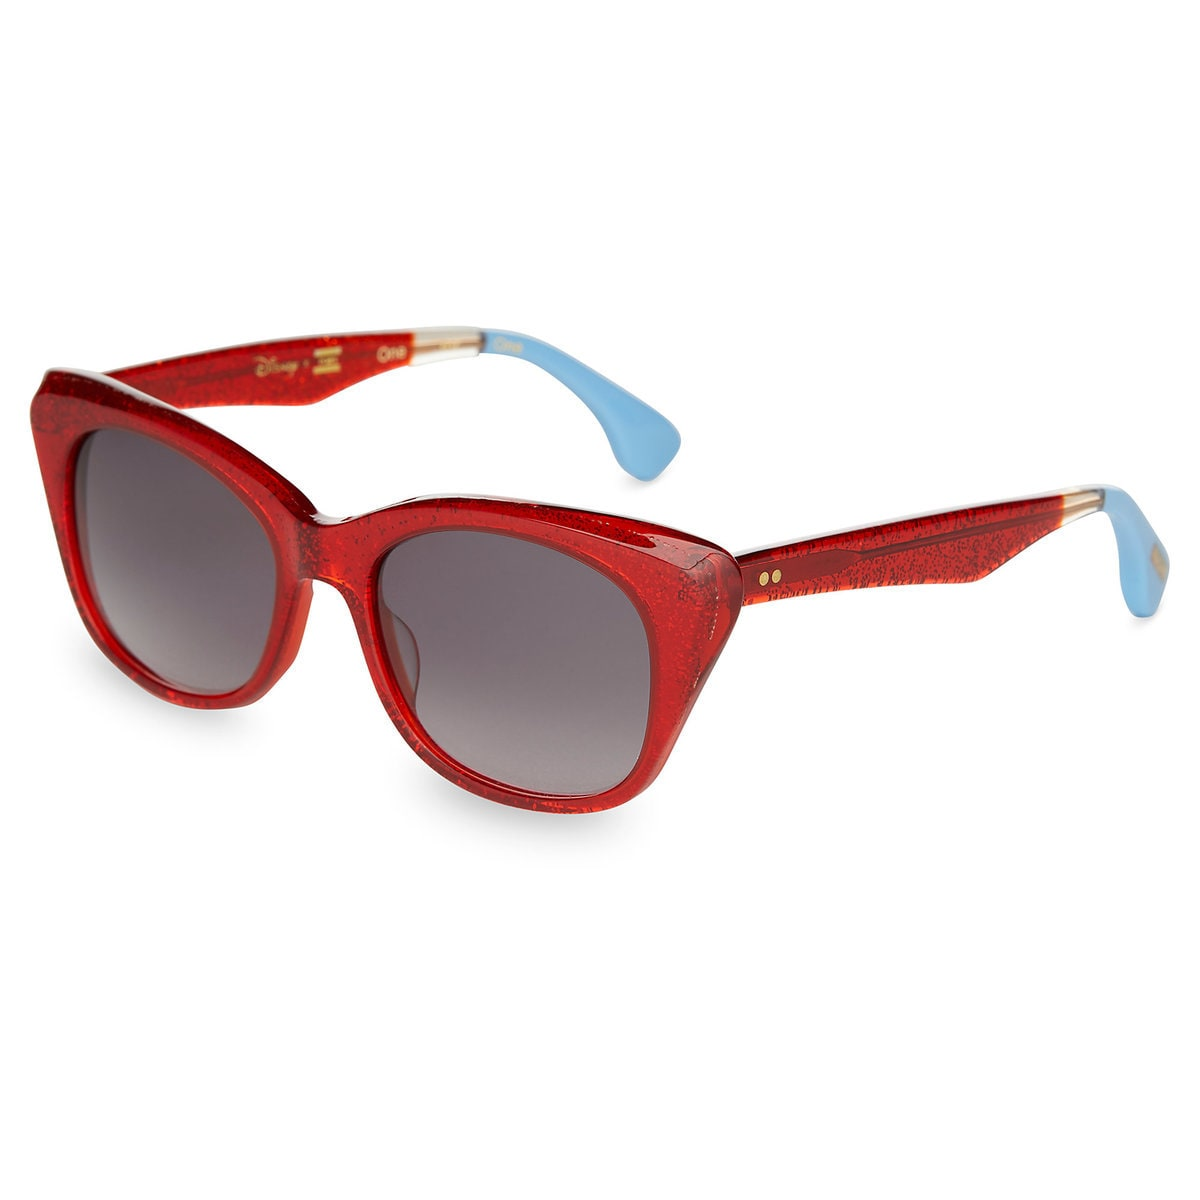 ebf0e239f56d9 Product Image of Snow White Red Glitter Kitty Sunglasses by TOMS   1